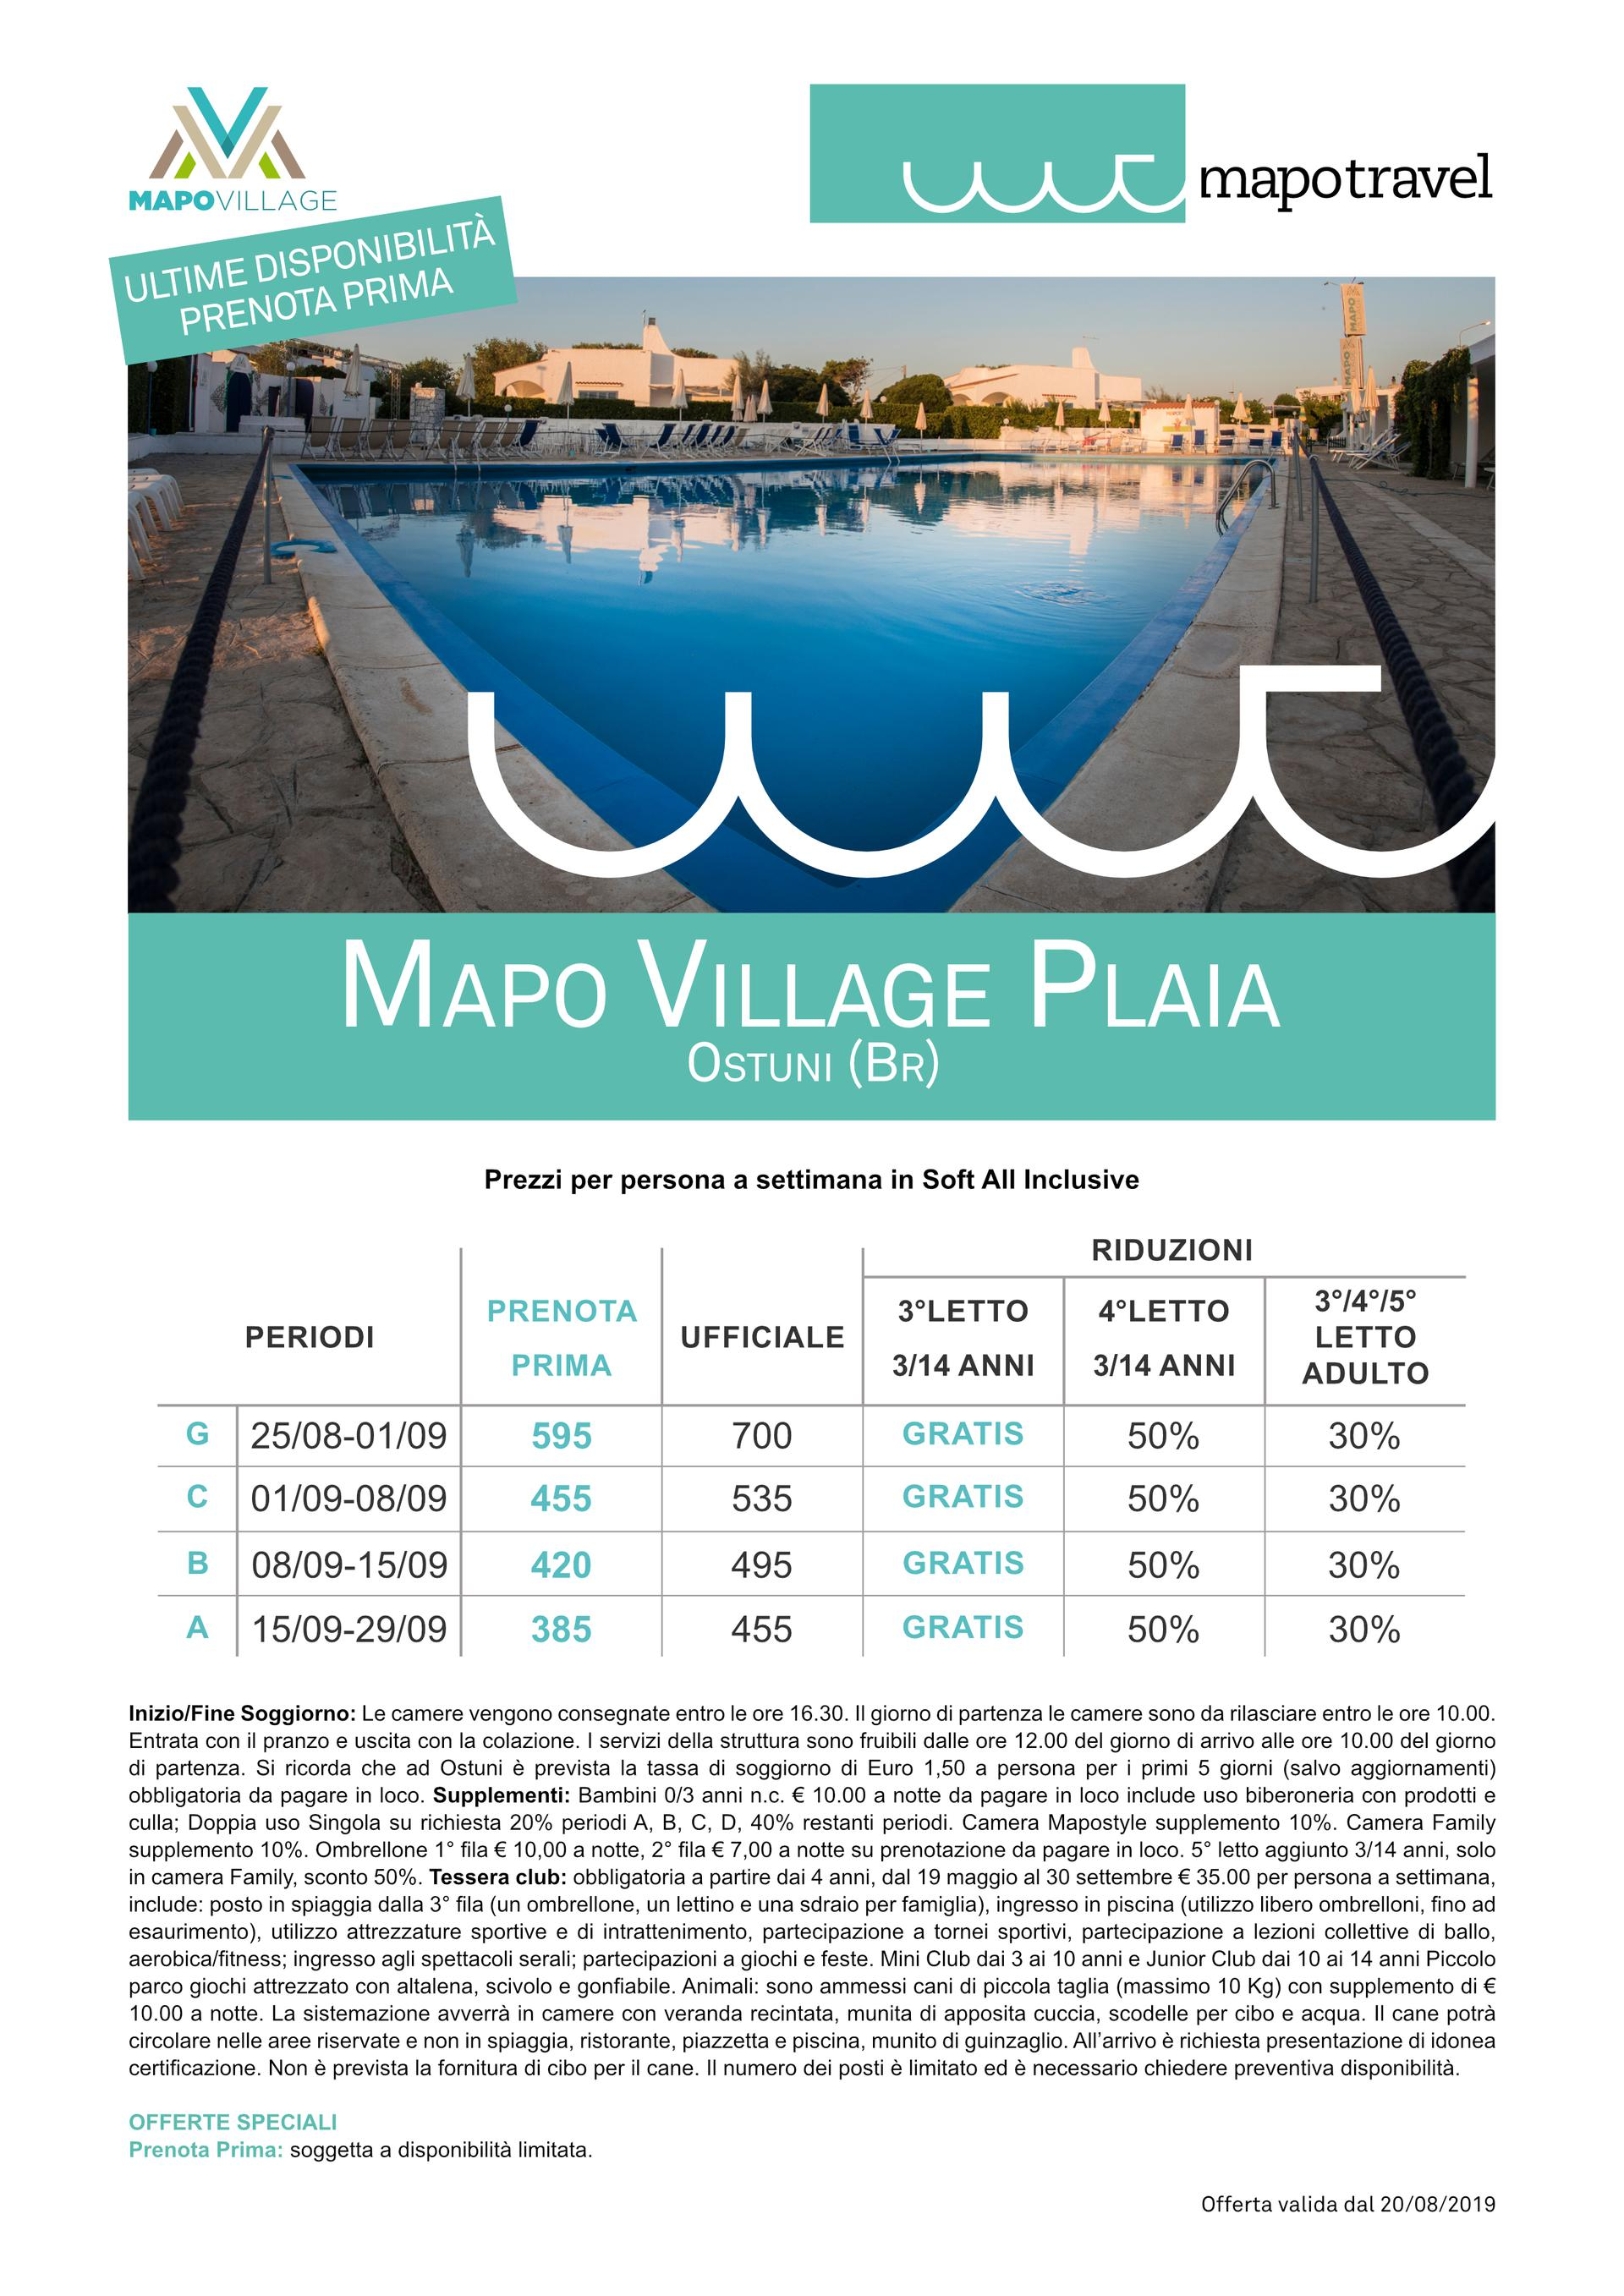 MAPO VILLAGE PLAIA